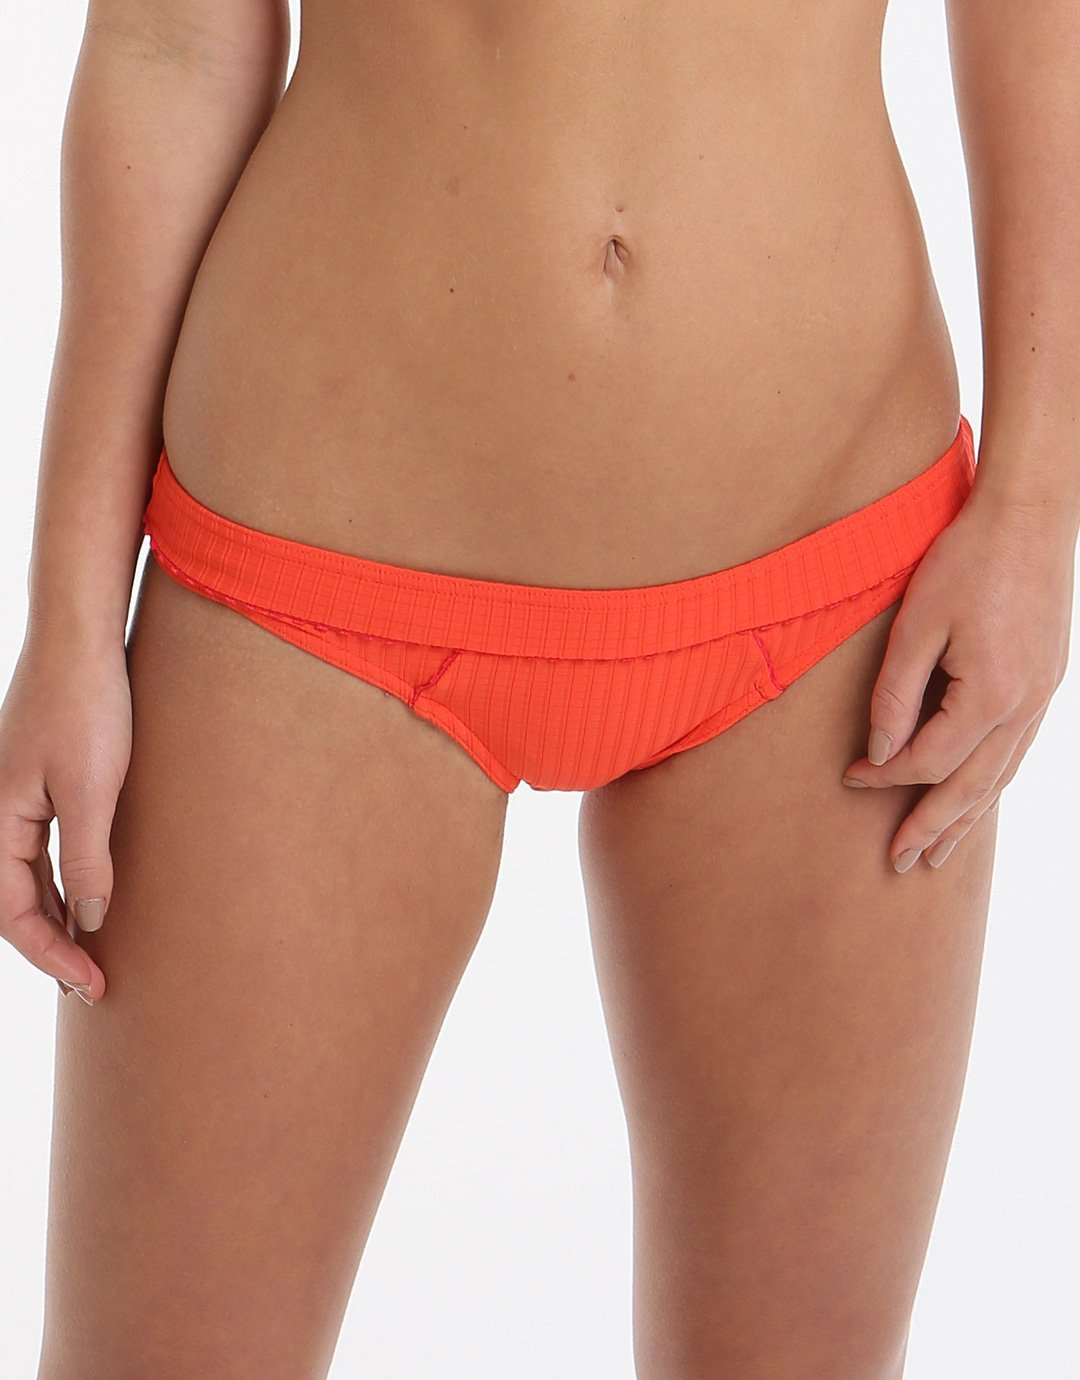 Huit Absolutely Chic Low Waisted Brief - Tangerine